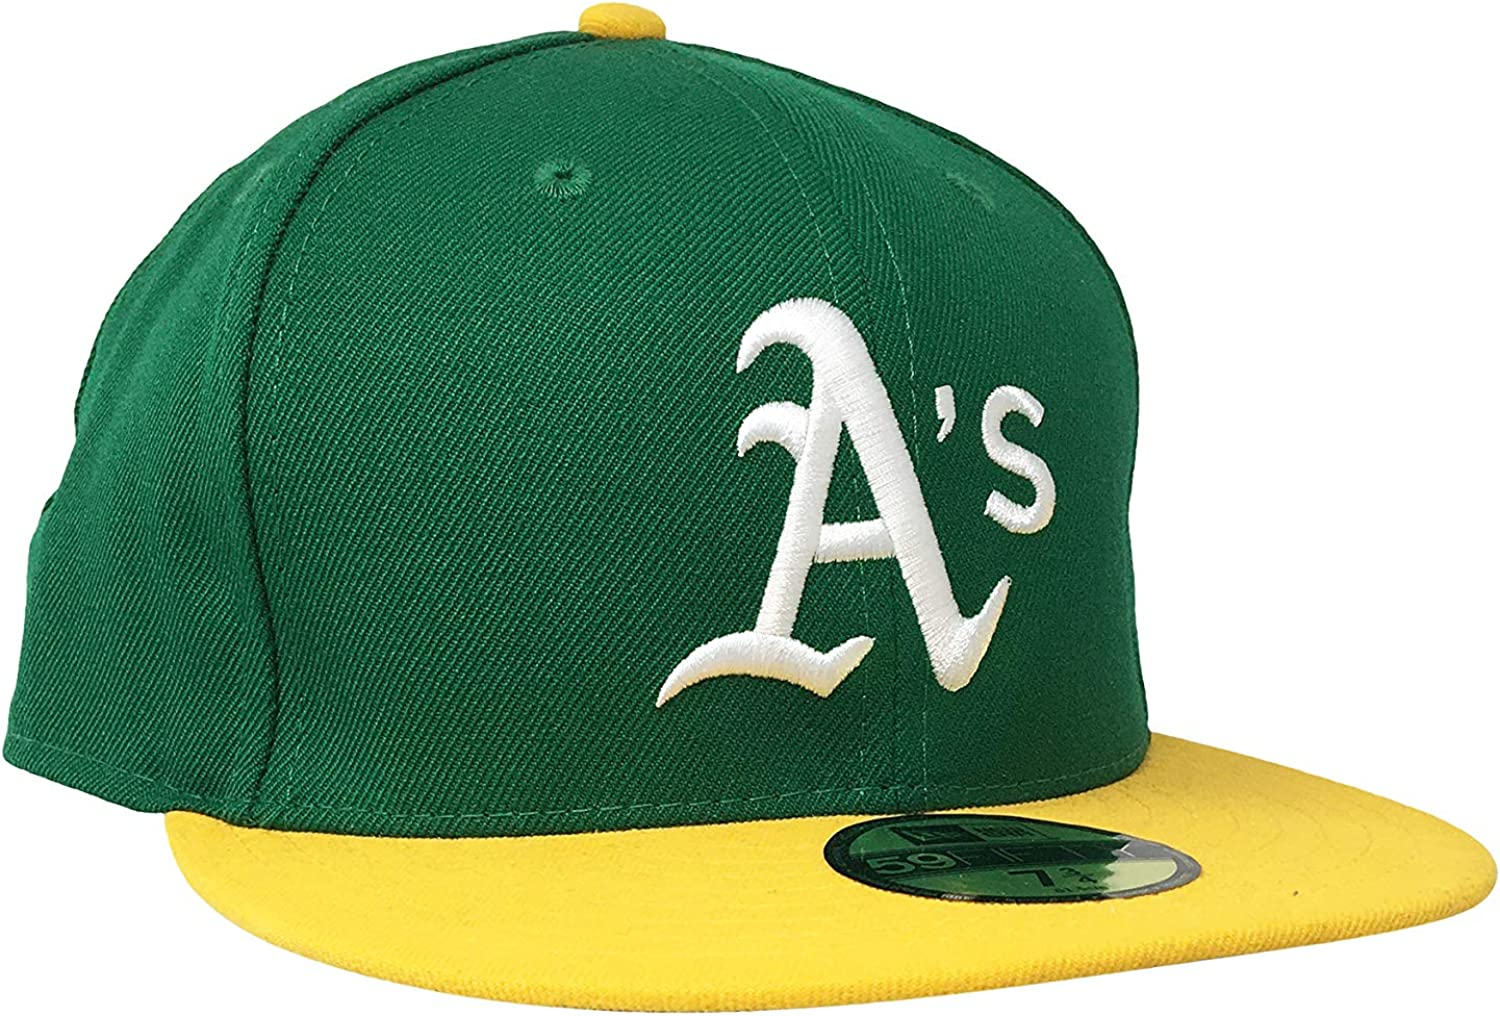 New Era Oakland Athletics 59Fifty Fitted Hat MLB Flat Bill Baseball Caps 5950